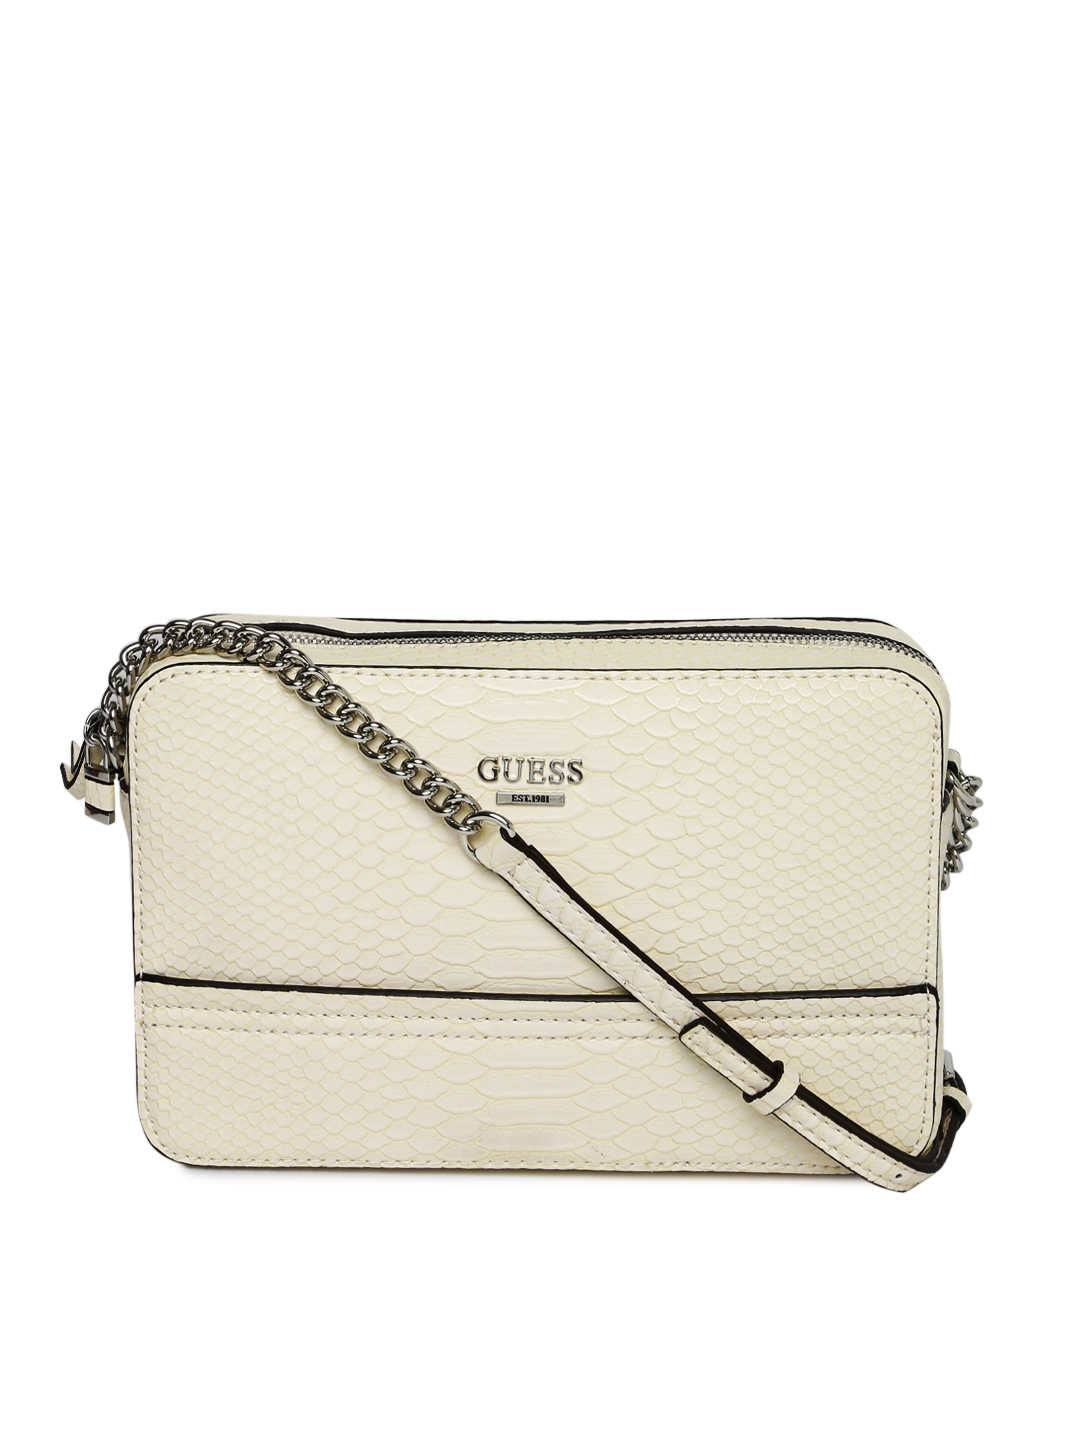 Buy GUESS Off White Snakeskin Textured Sling Bag - Handbags for ... 8b83cea95a